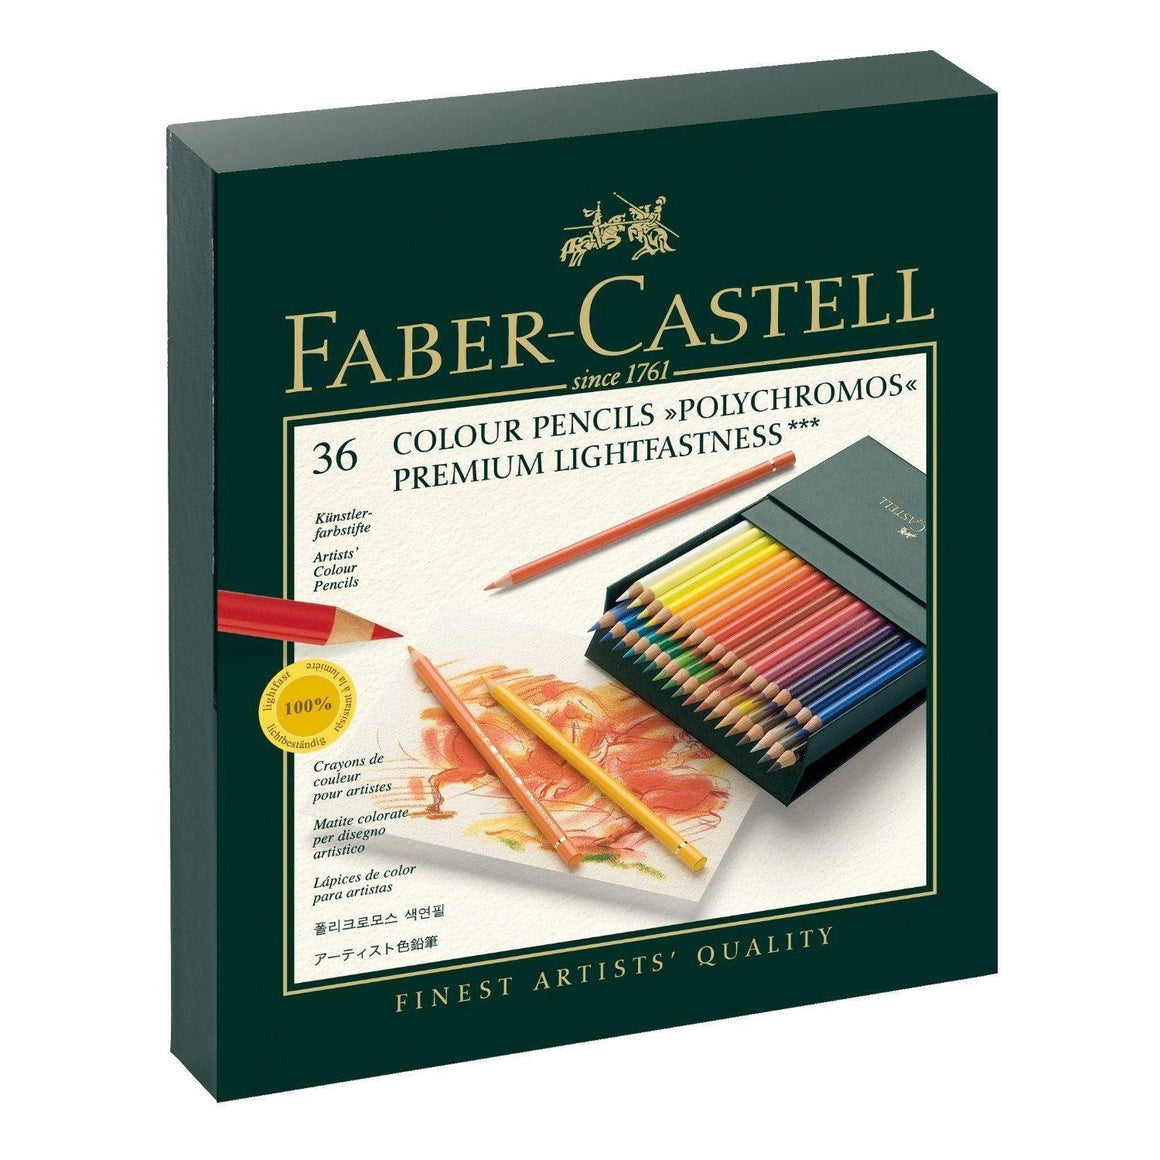 Faber-Castell Polychromos Pencils - 36 Colour Gift Box Set - Spectrum Art Shop Birmingham